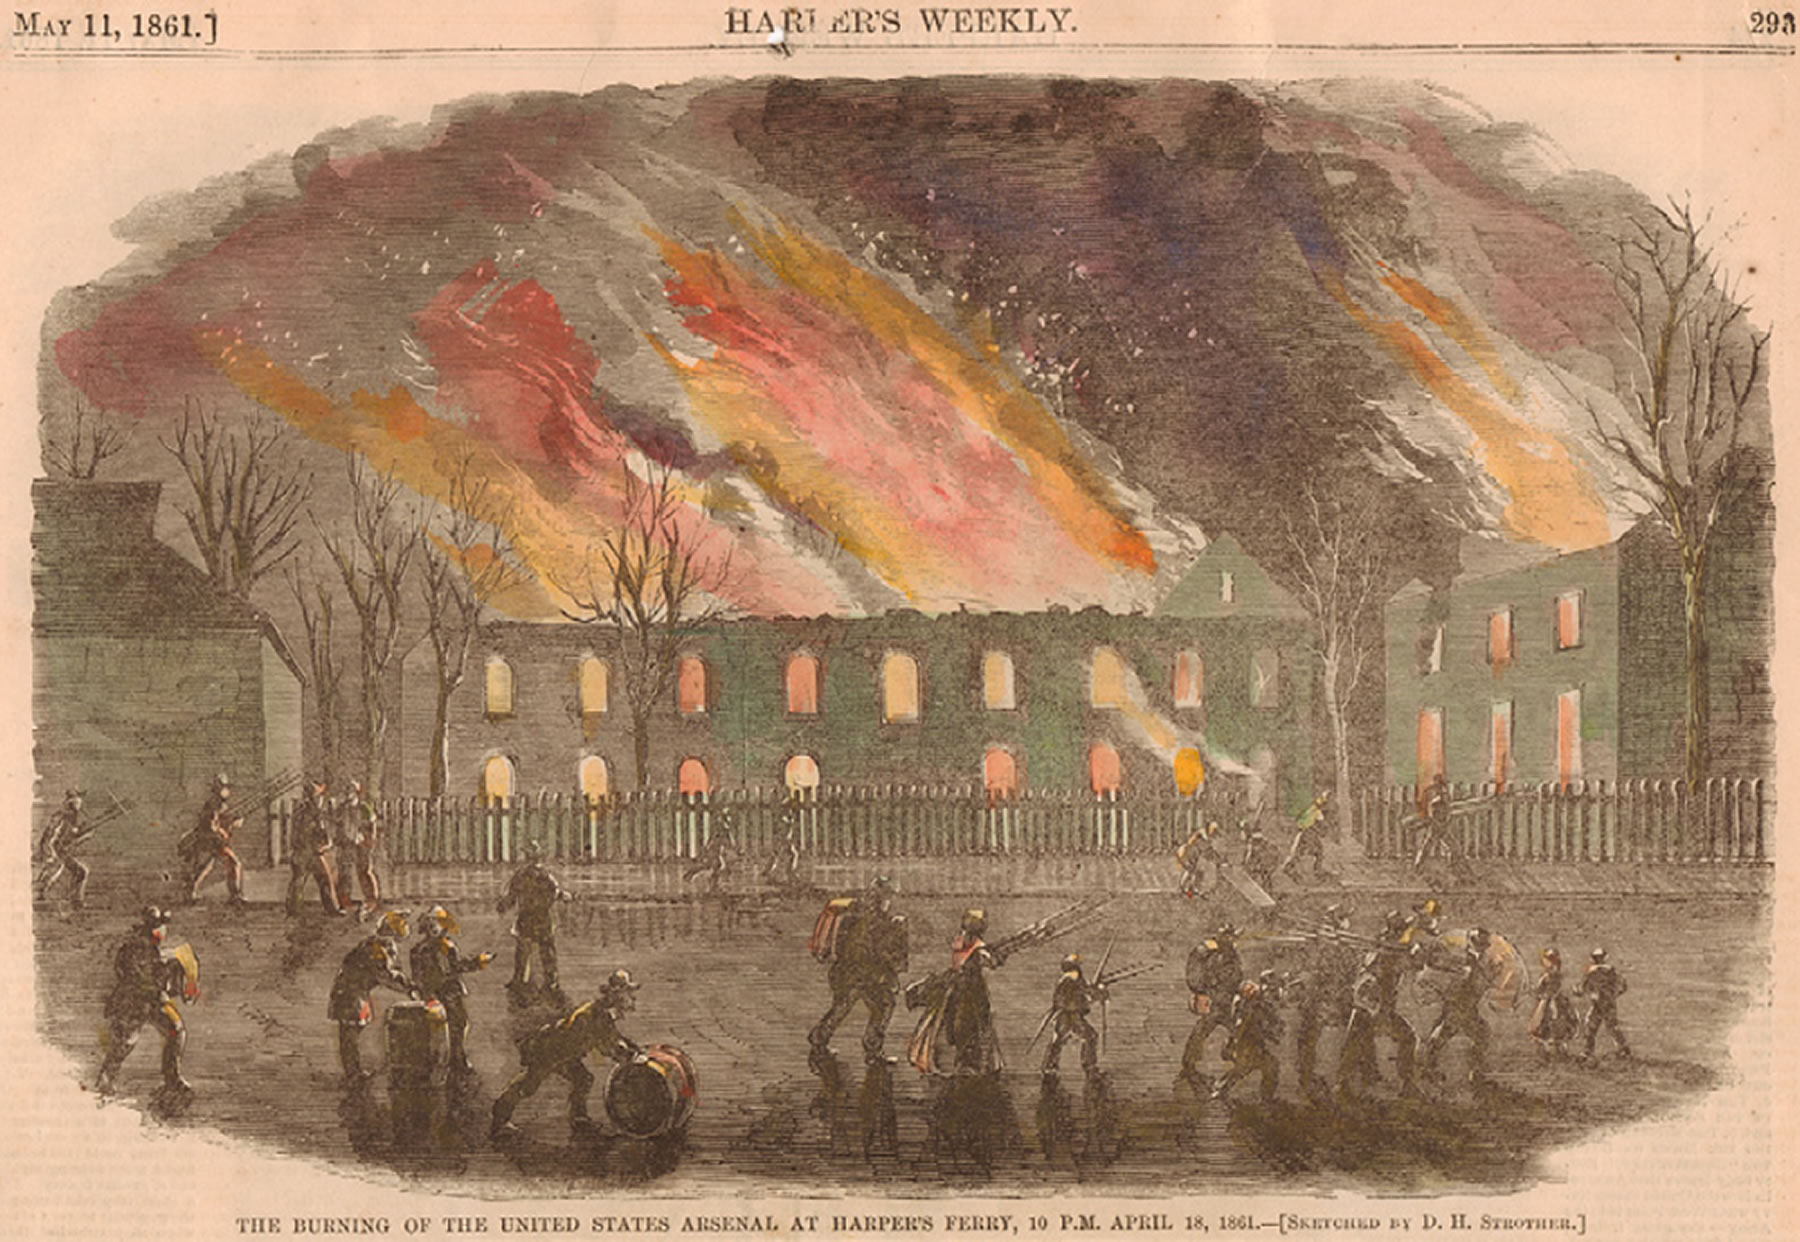 Burning of the arsenal at Harper's Ferry, David Hunter Strother, Harpers Ferry National Historical Park